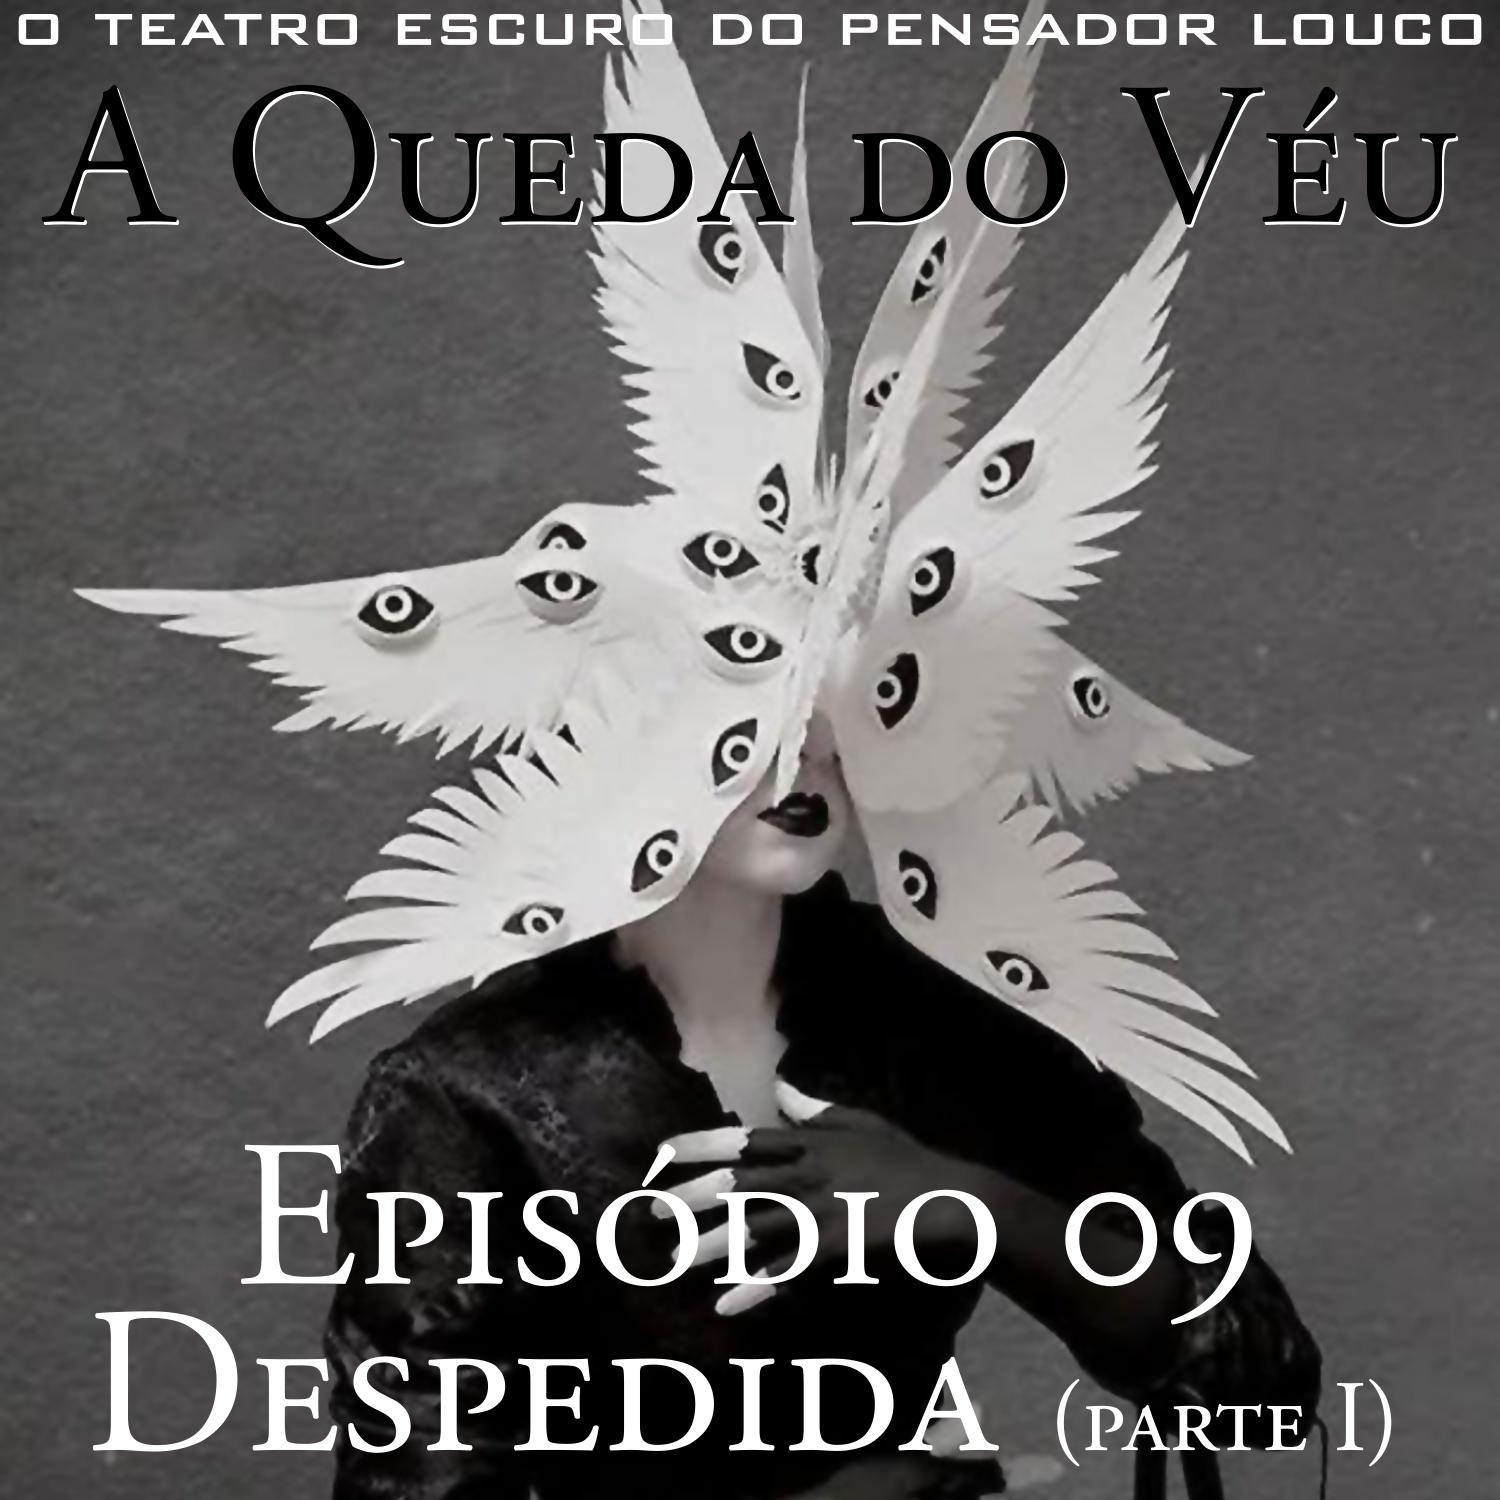 A Queda do Véu 09 - Despedida (parteI)